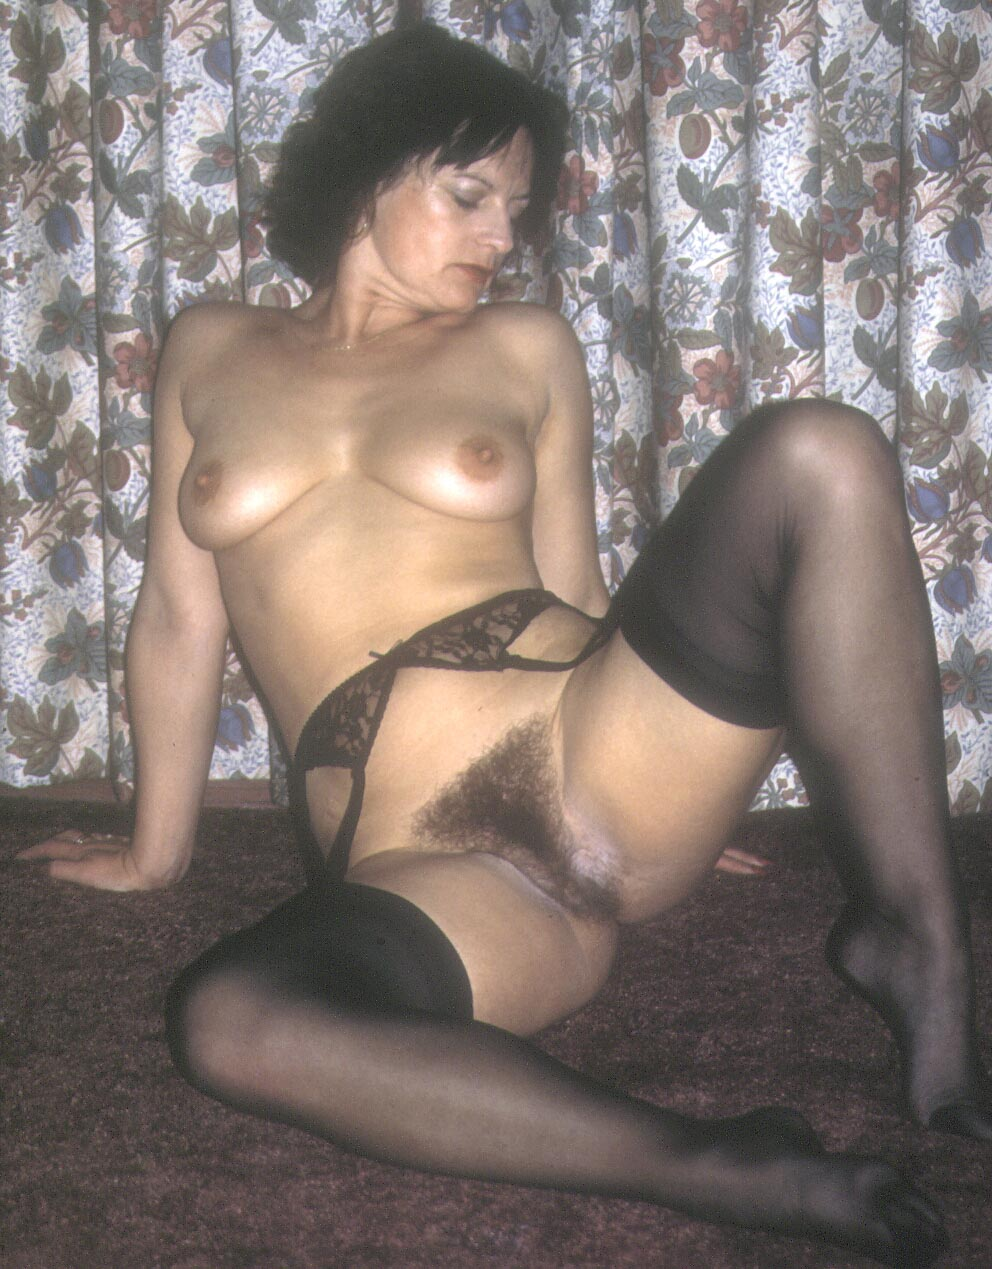 Remarkable, wifes stockings nude pics excited too